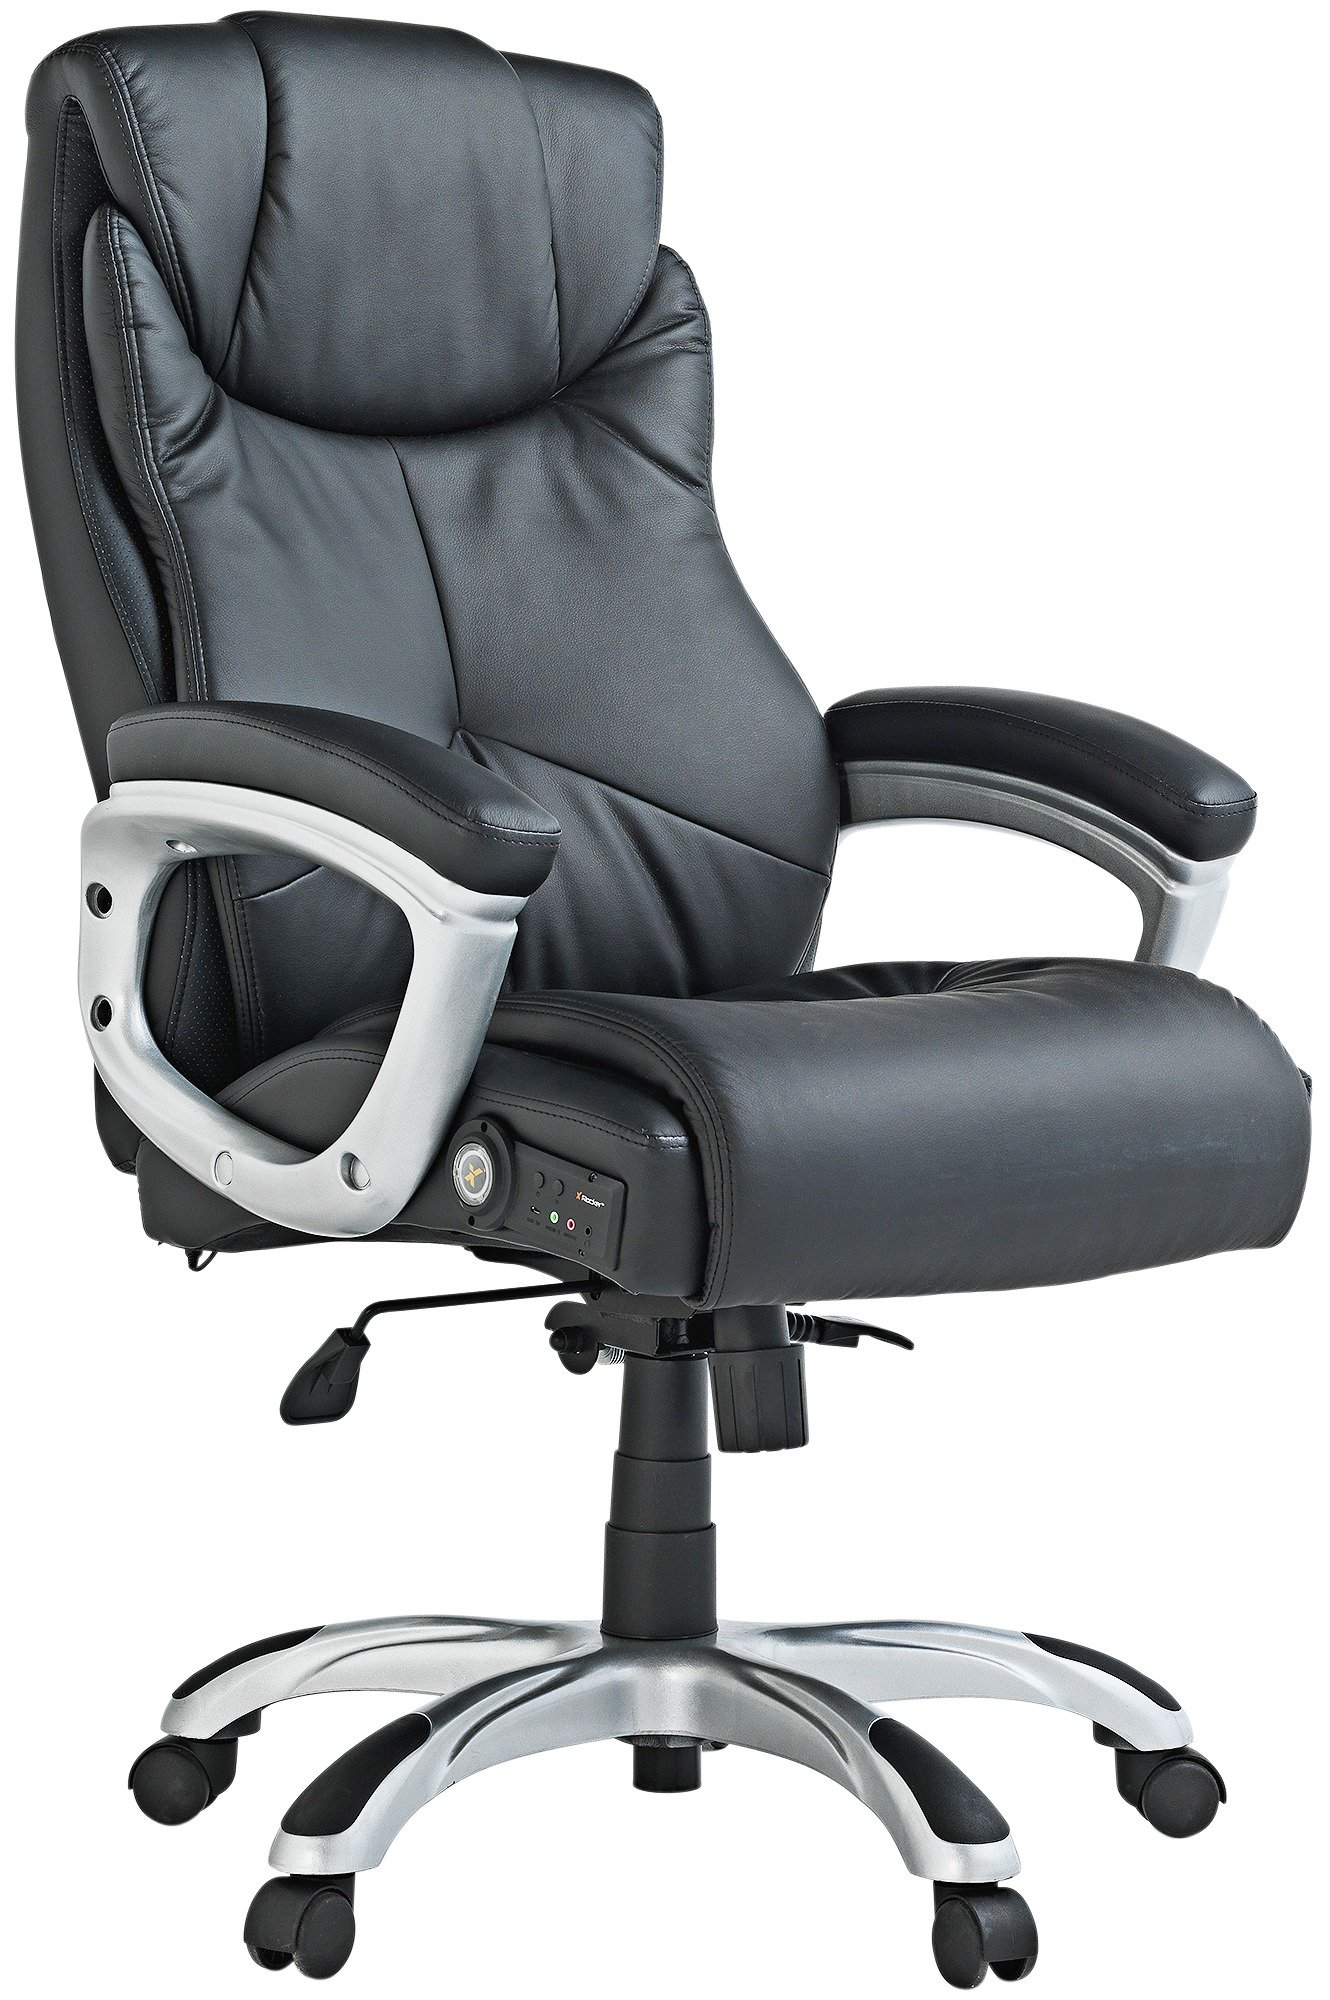 X-Rocker Executive 2.0 Wireless Executive Office Chair